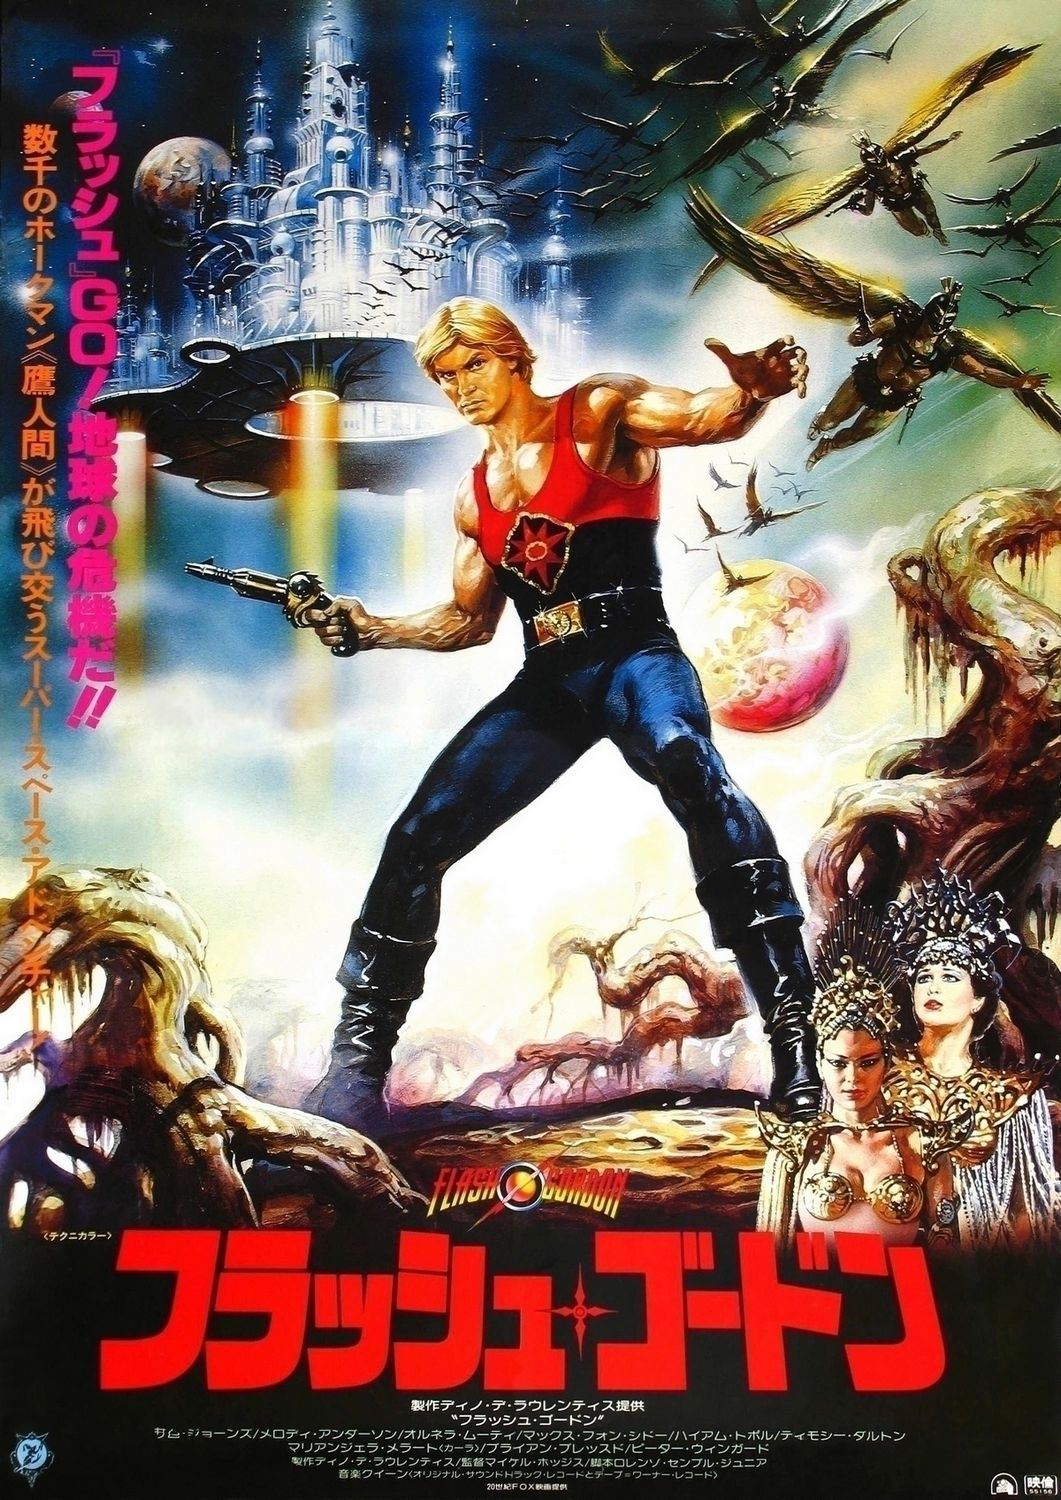 the geeky nerfherder movie poster art flash gordon 1980